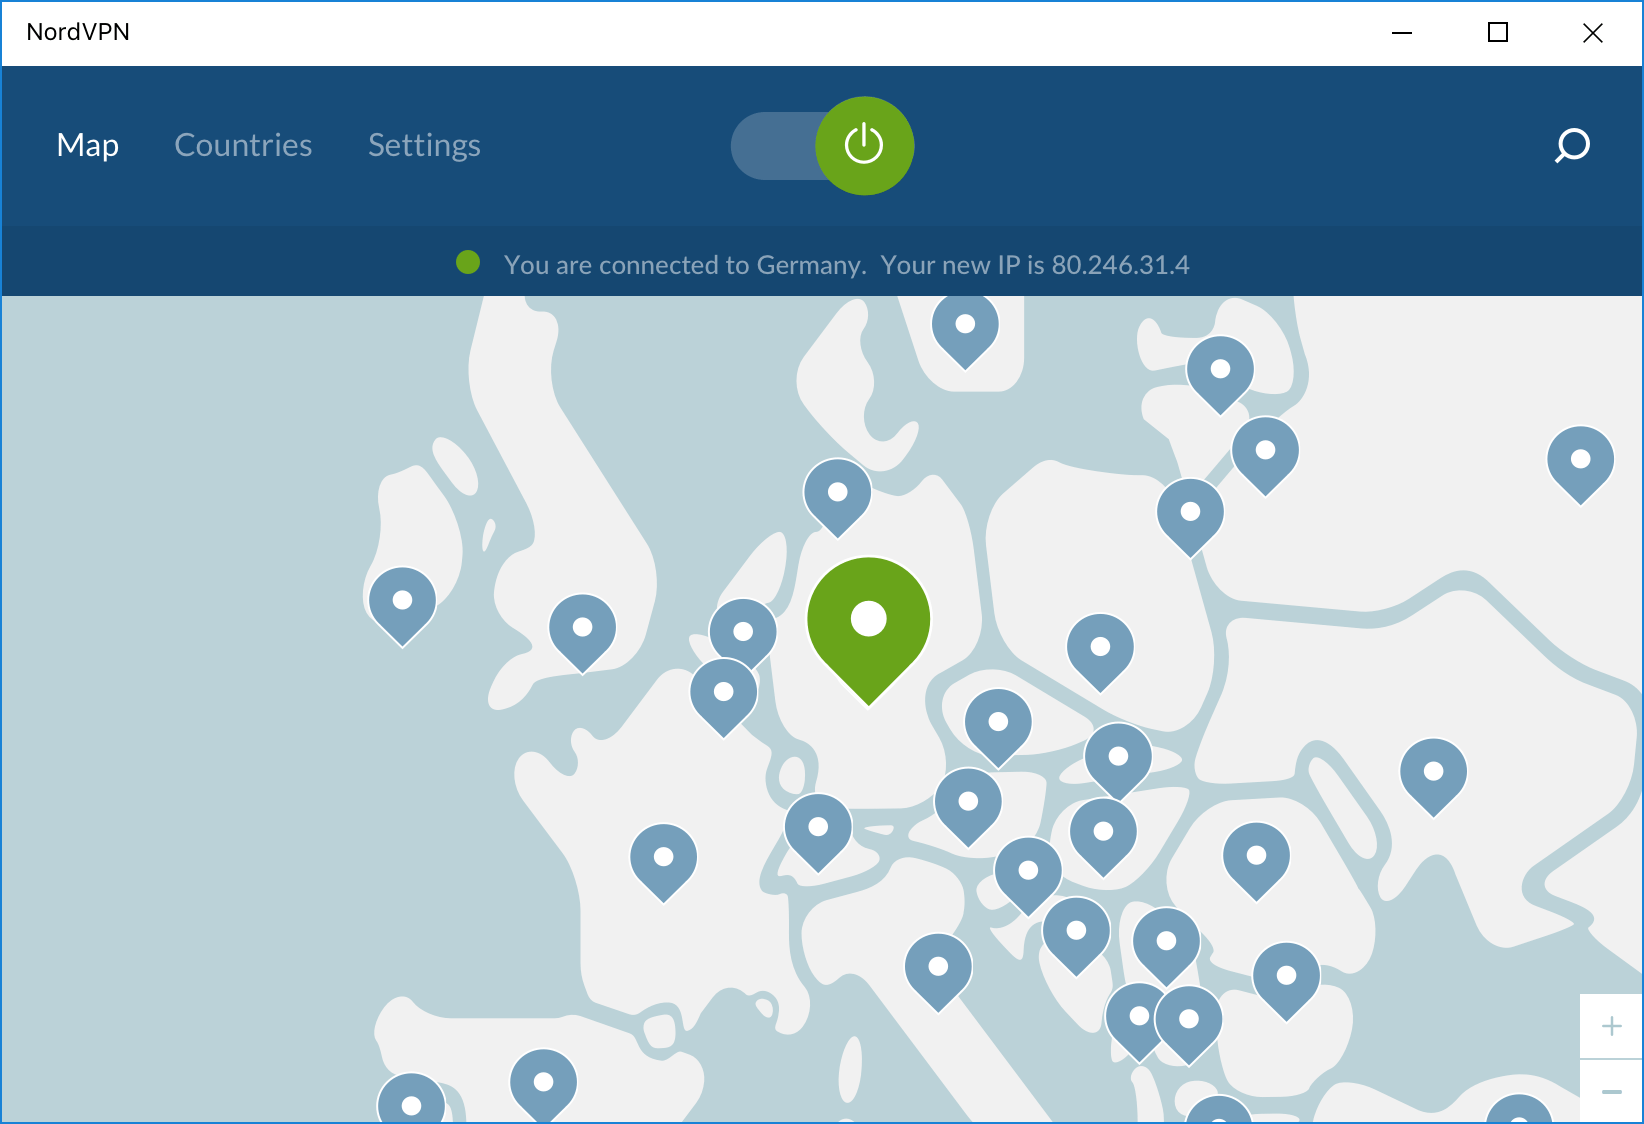 Is nordvpn safe to use